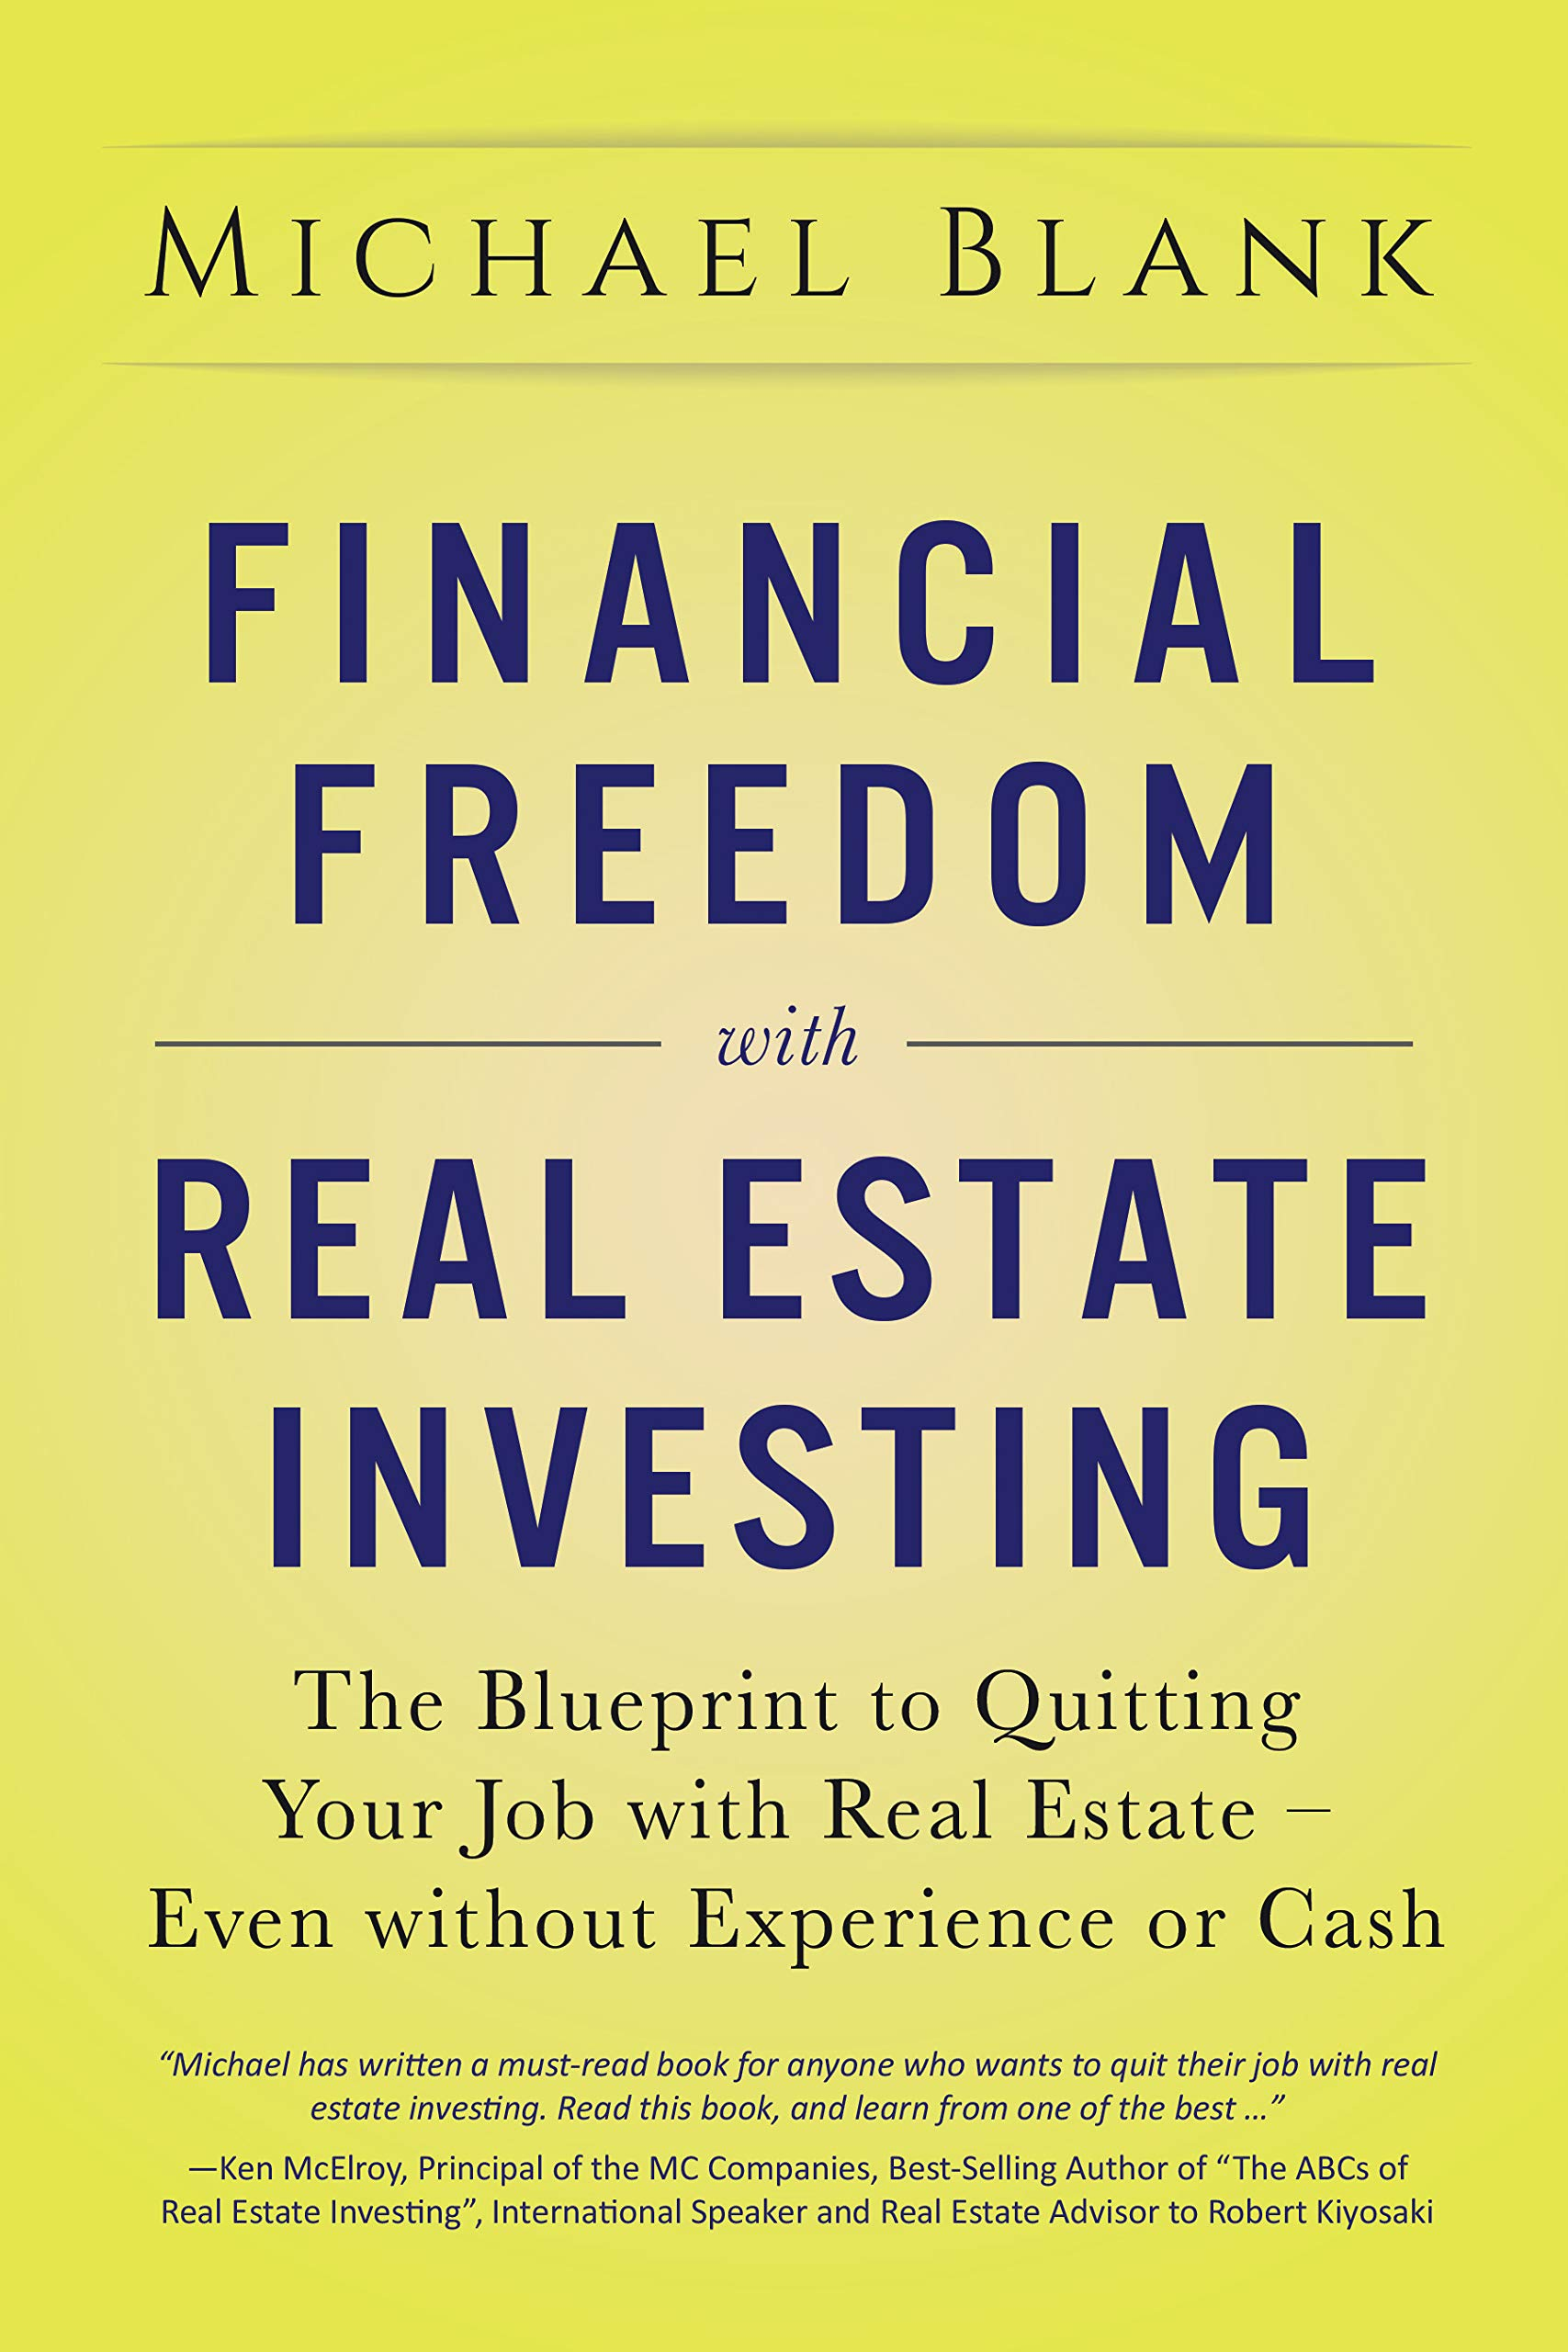 Financial Freedom With Real Estate Investing  The Blueprint To Quitting Your Job With Real Estate   Even Without Experience Or Cash  English Edition